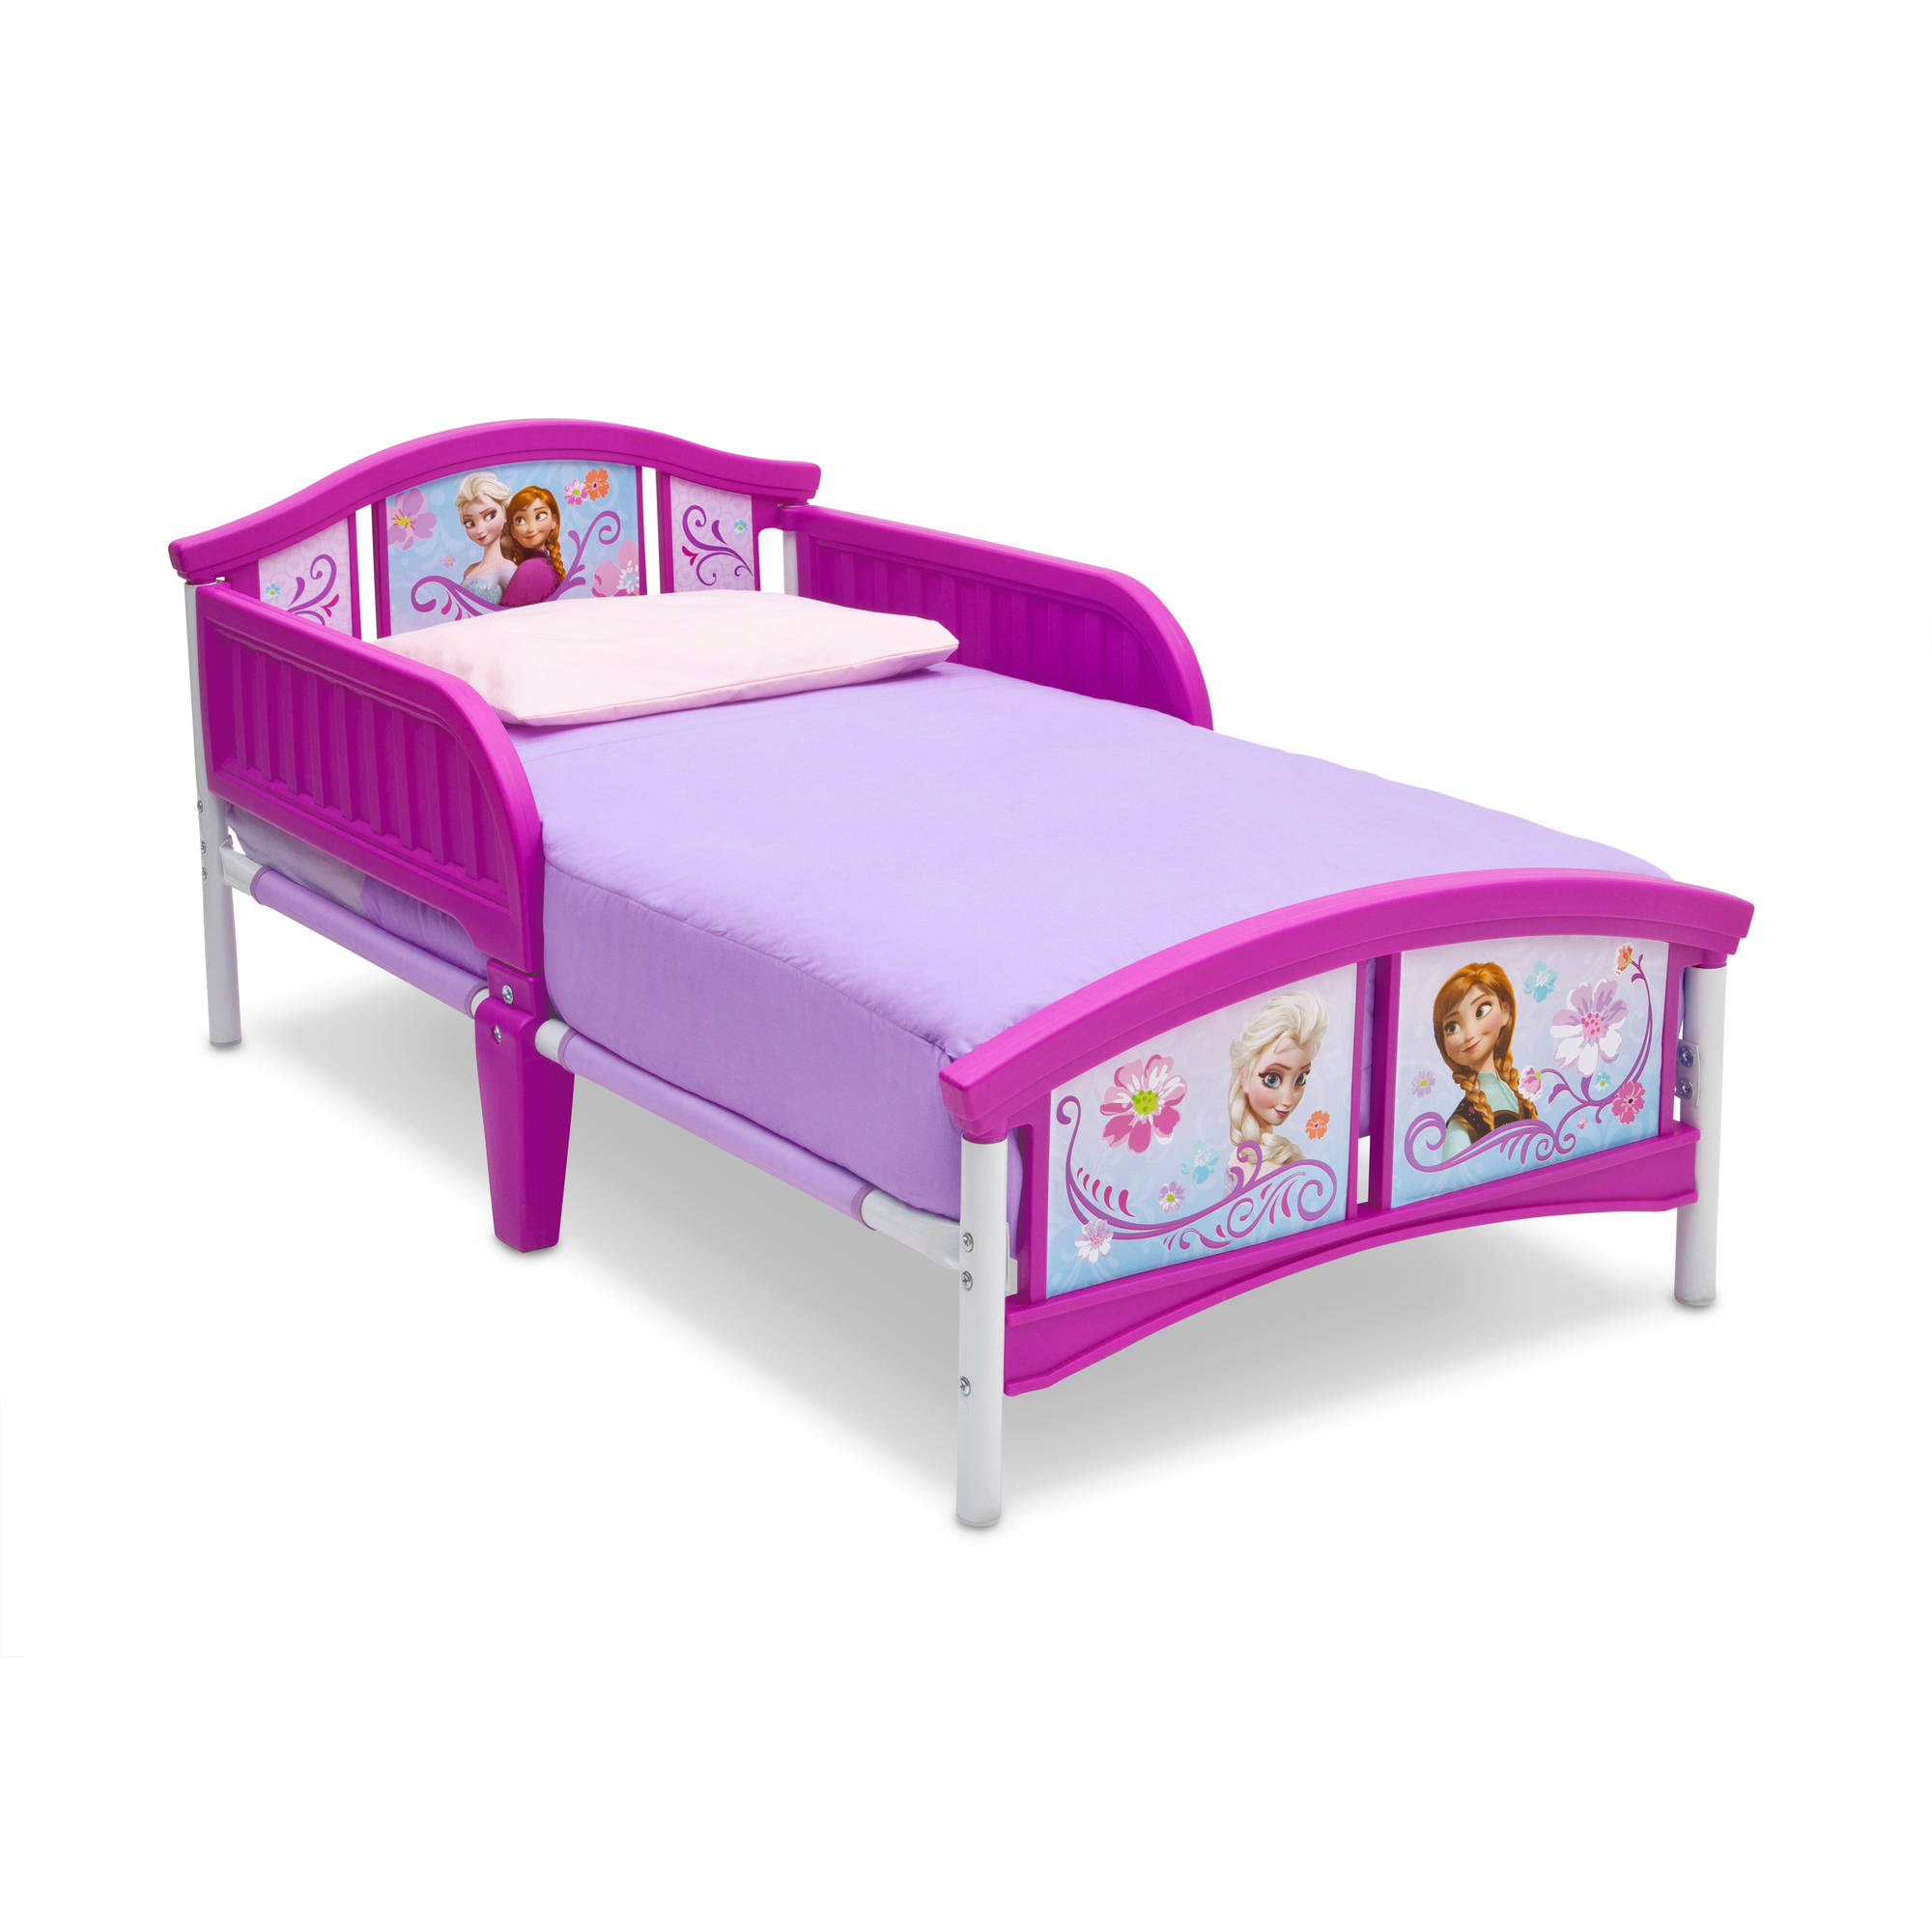 Delta Children s Products Disney Frozen Plastic Toddler Bed   Walmart com. Delta Children s Products Disney Frozen Plastic Toddler Bed